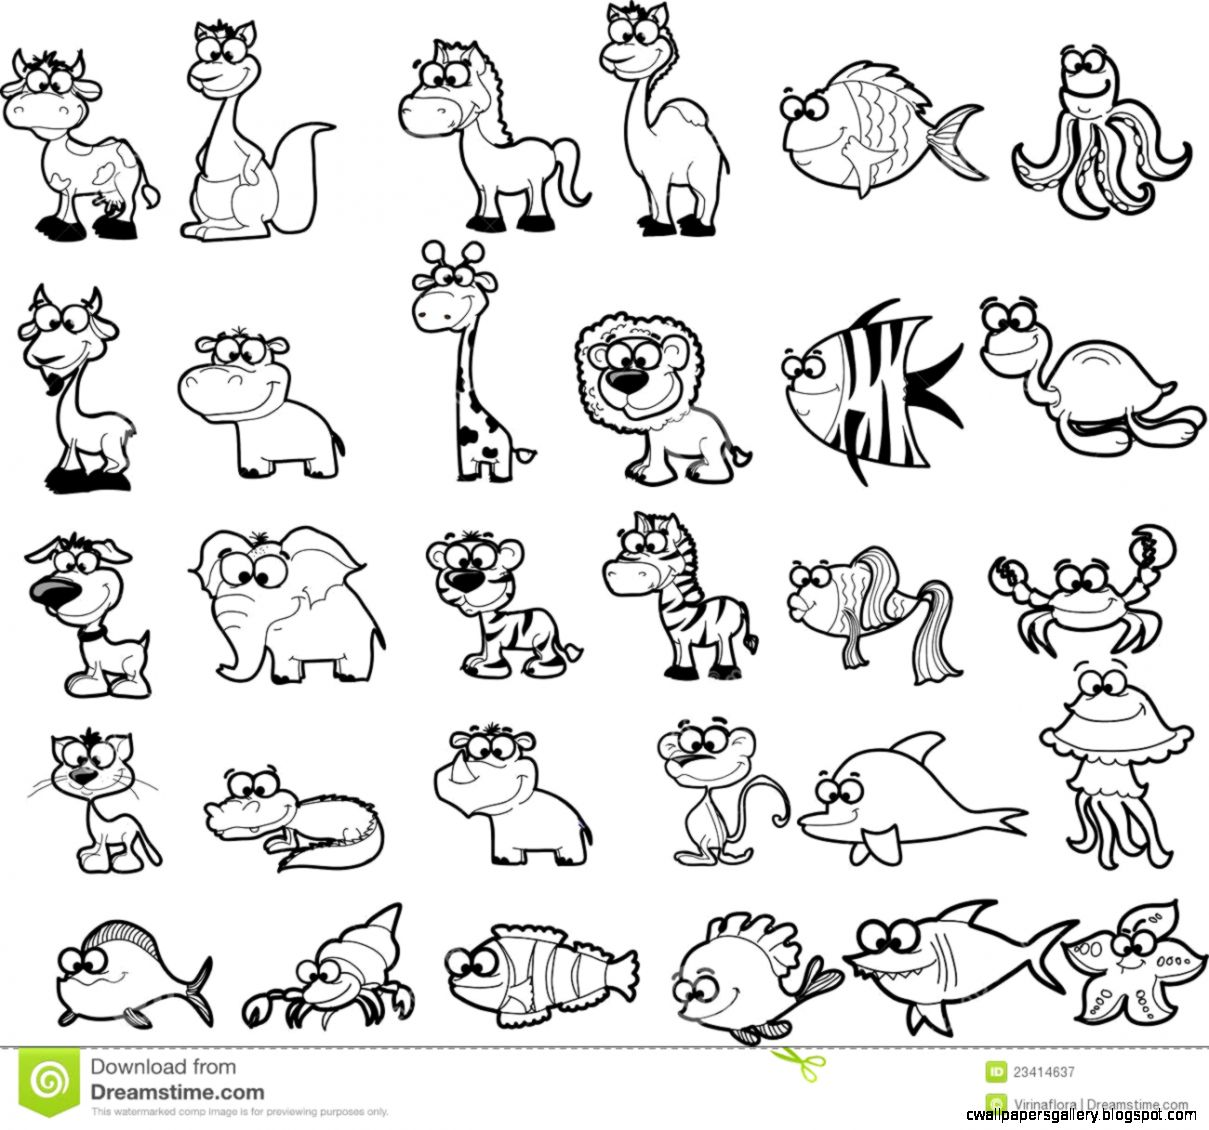 Baby Zoo Animals Clipart Black And White.